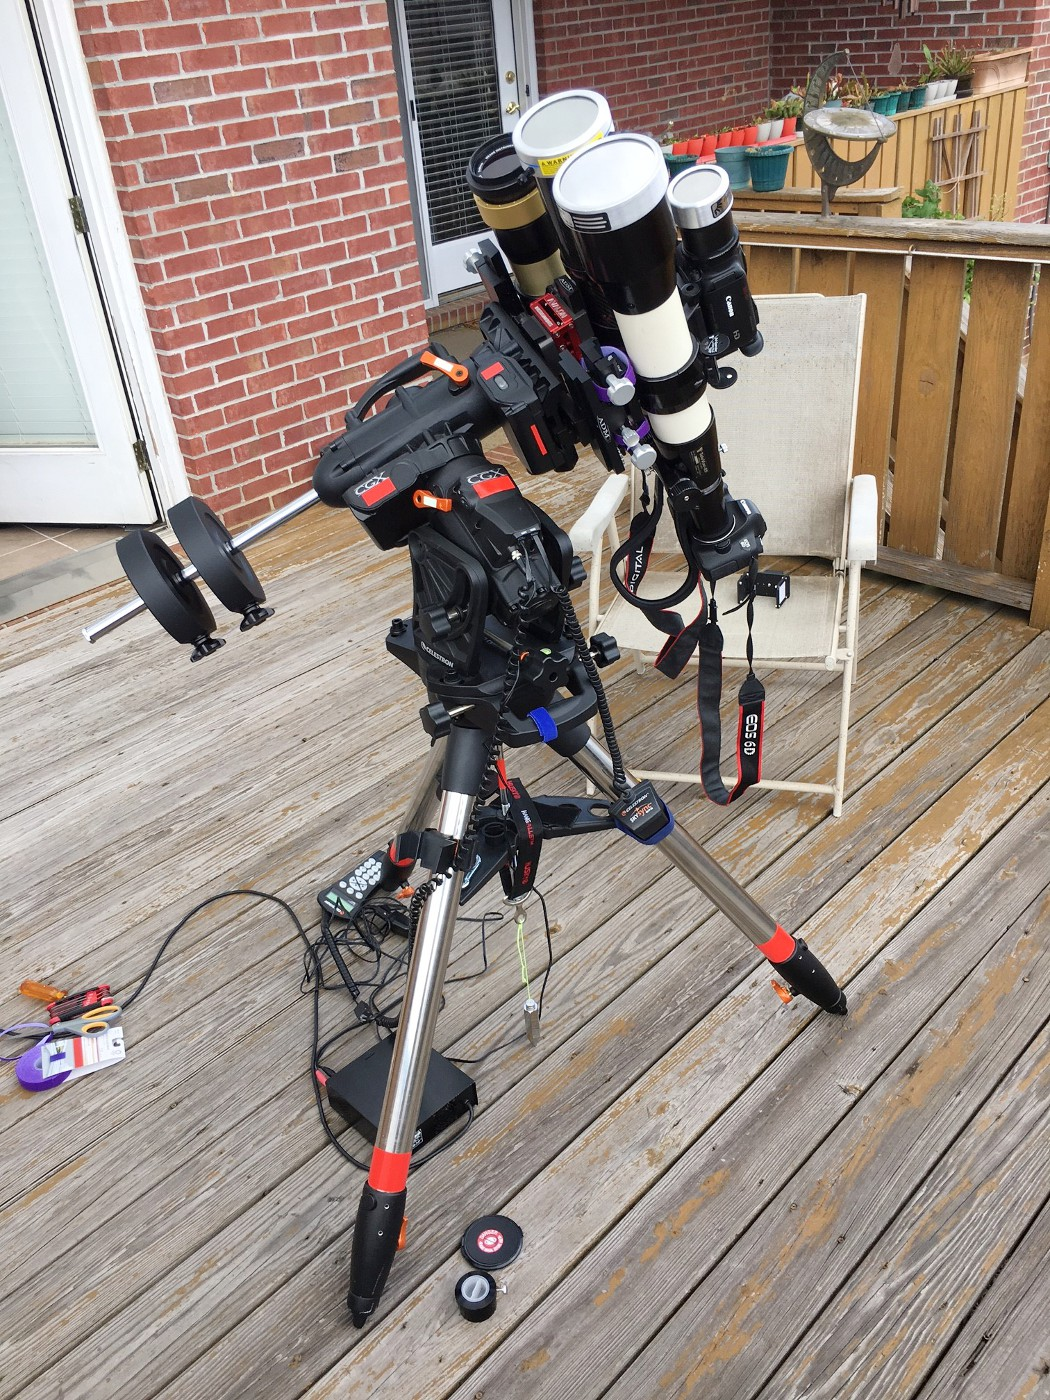 Eclipse imaging setup using a Televue 85 with Canon 6D DSLR